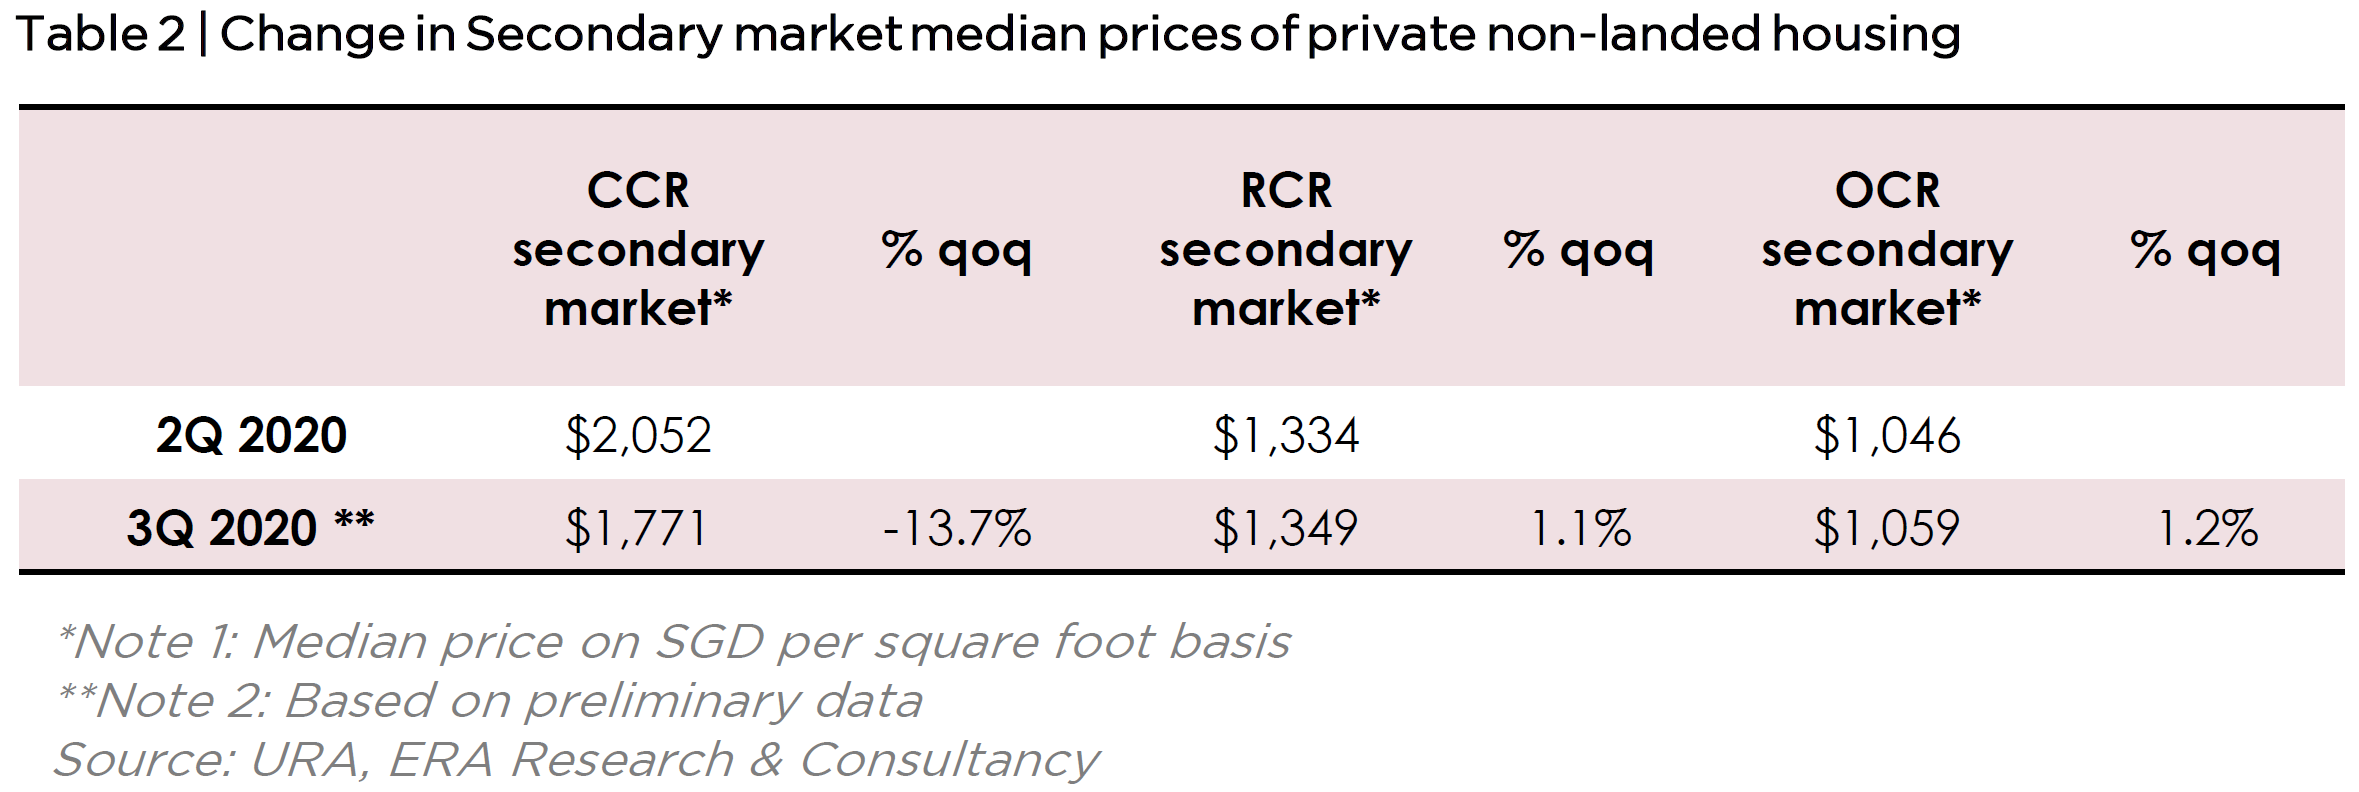 Change in Secondary Market Median Prices of Private Non-Landed Housing